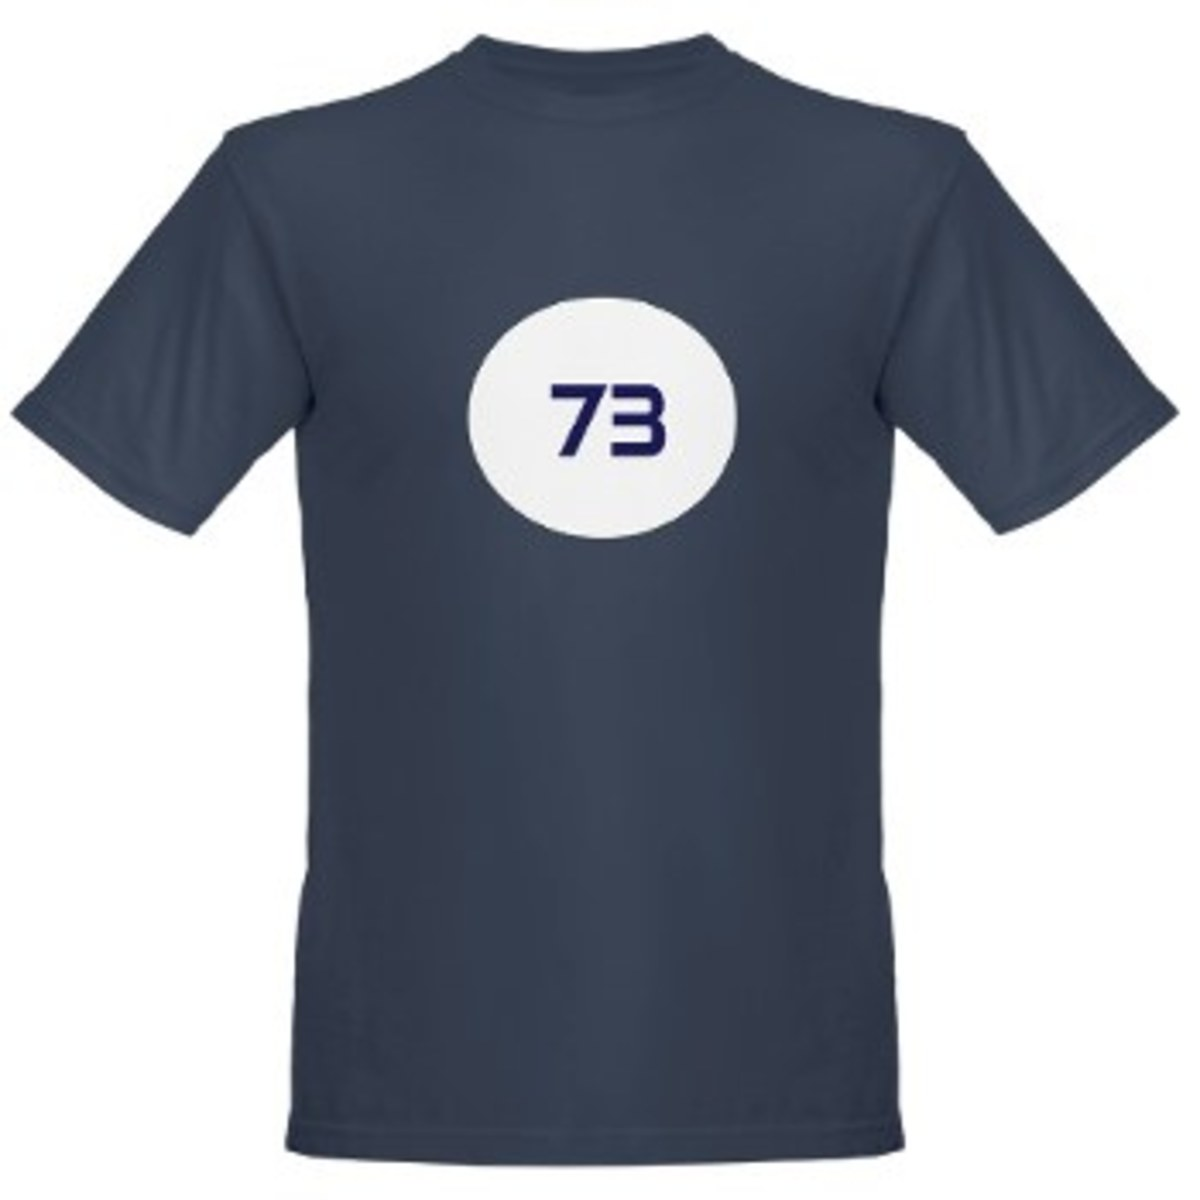 The 73 on Sheldon's shirt isn't just a random number...